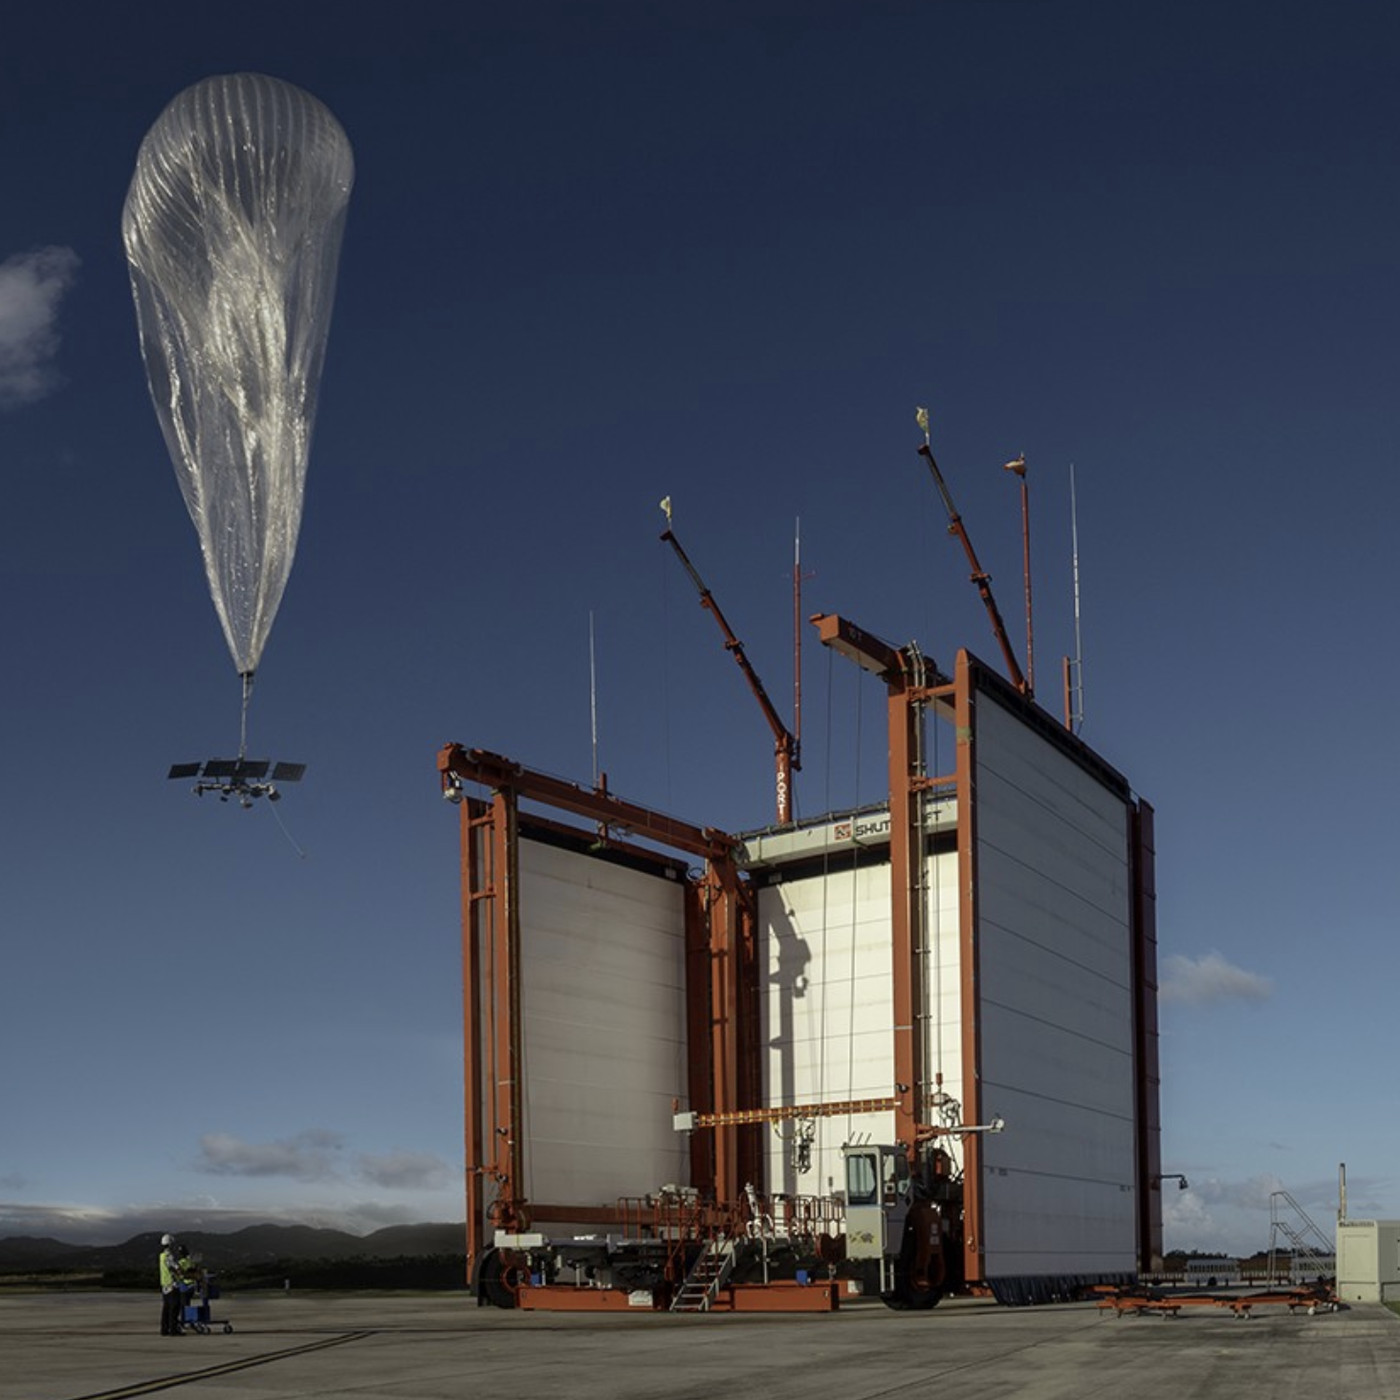 Alphabet S Loon Balloons Will Provide Internet To Remote Parts Of The Amazon Next Year The Verge